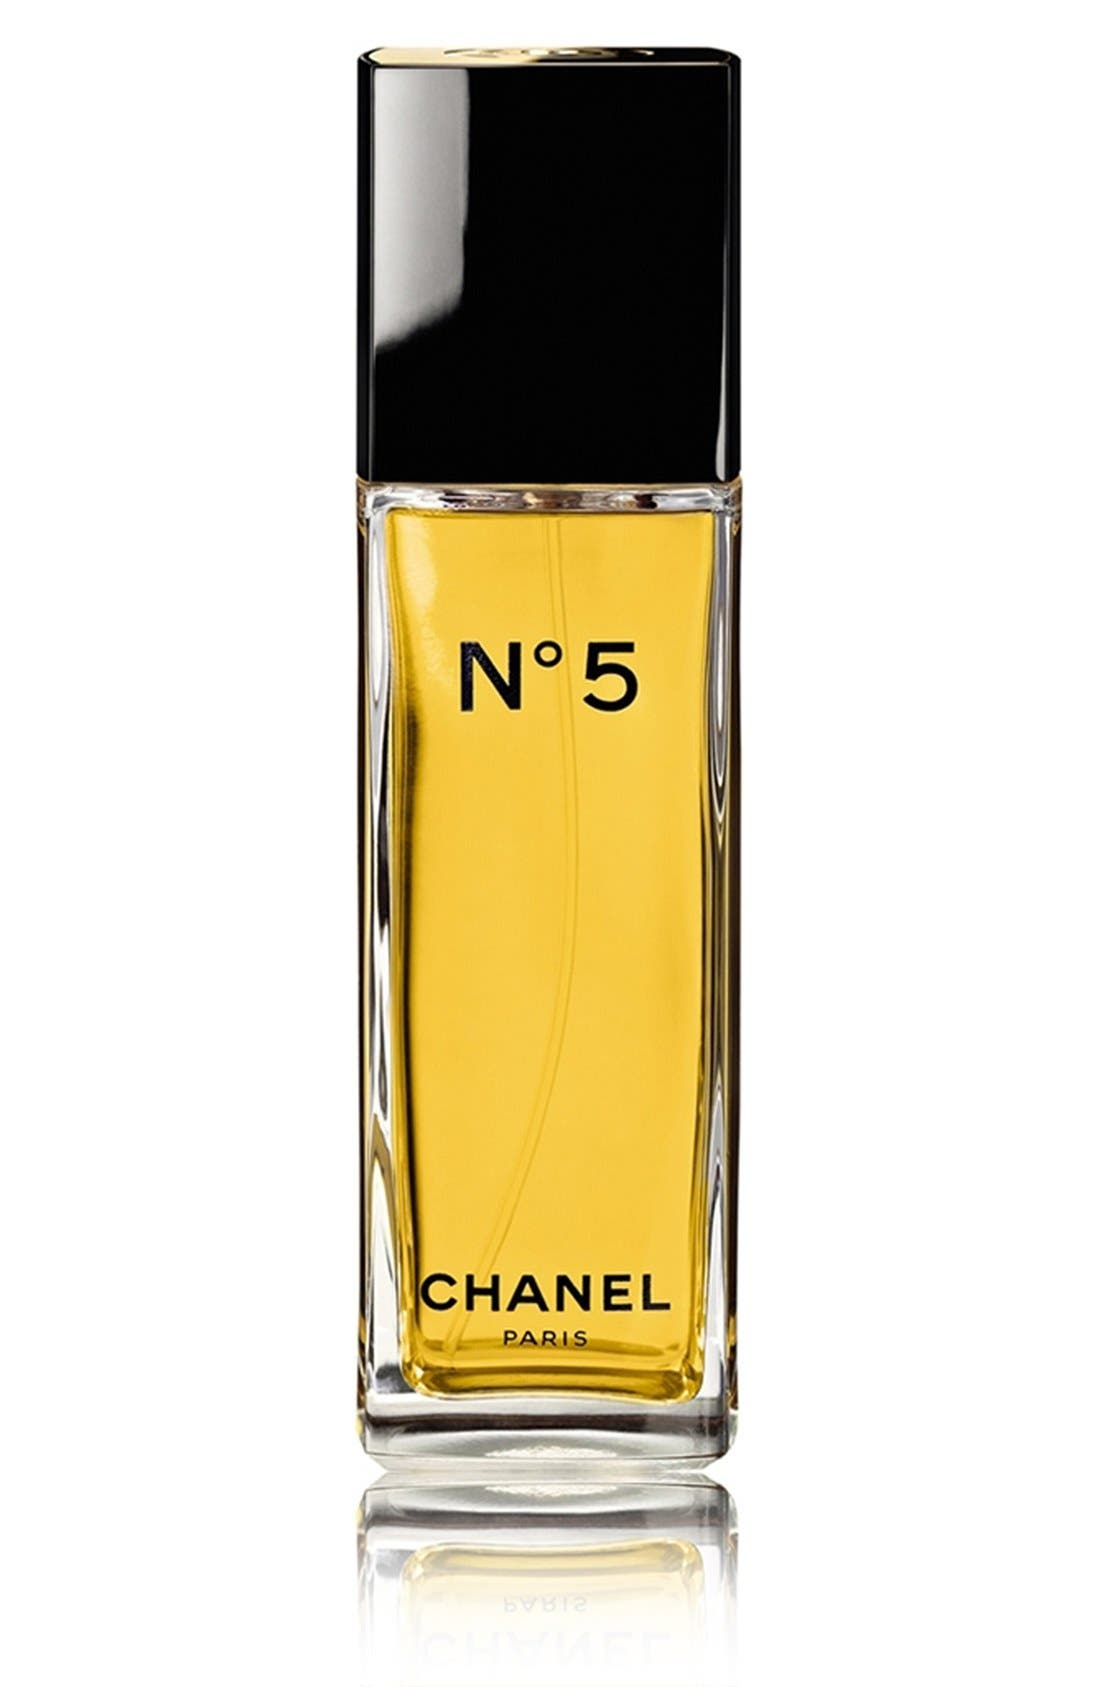 CHANEL N°5 